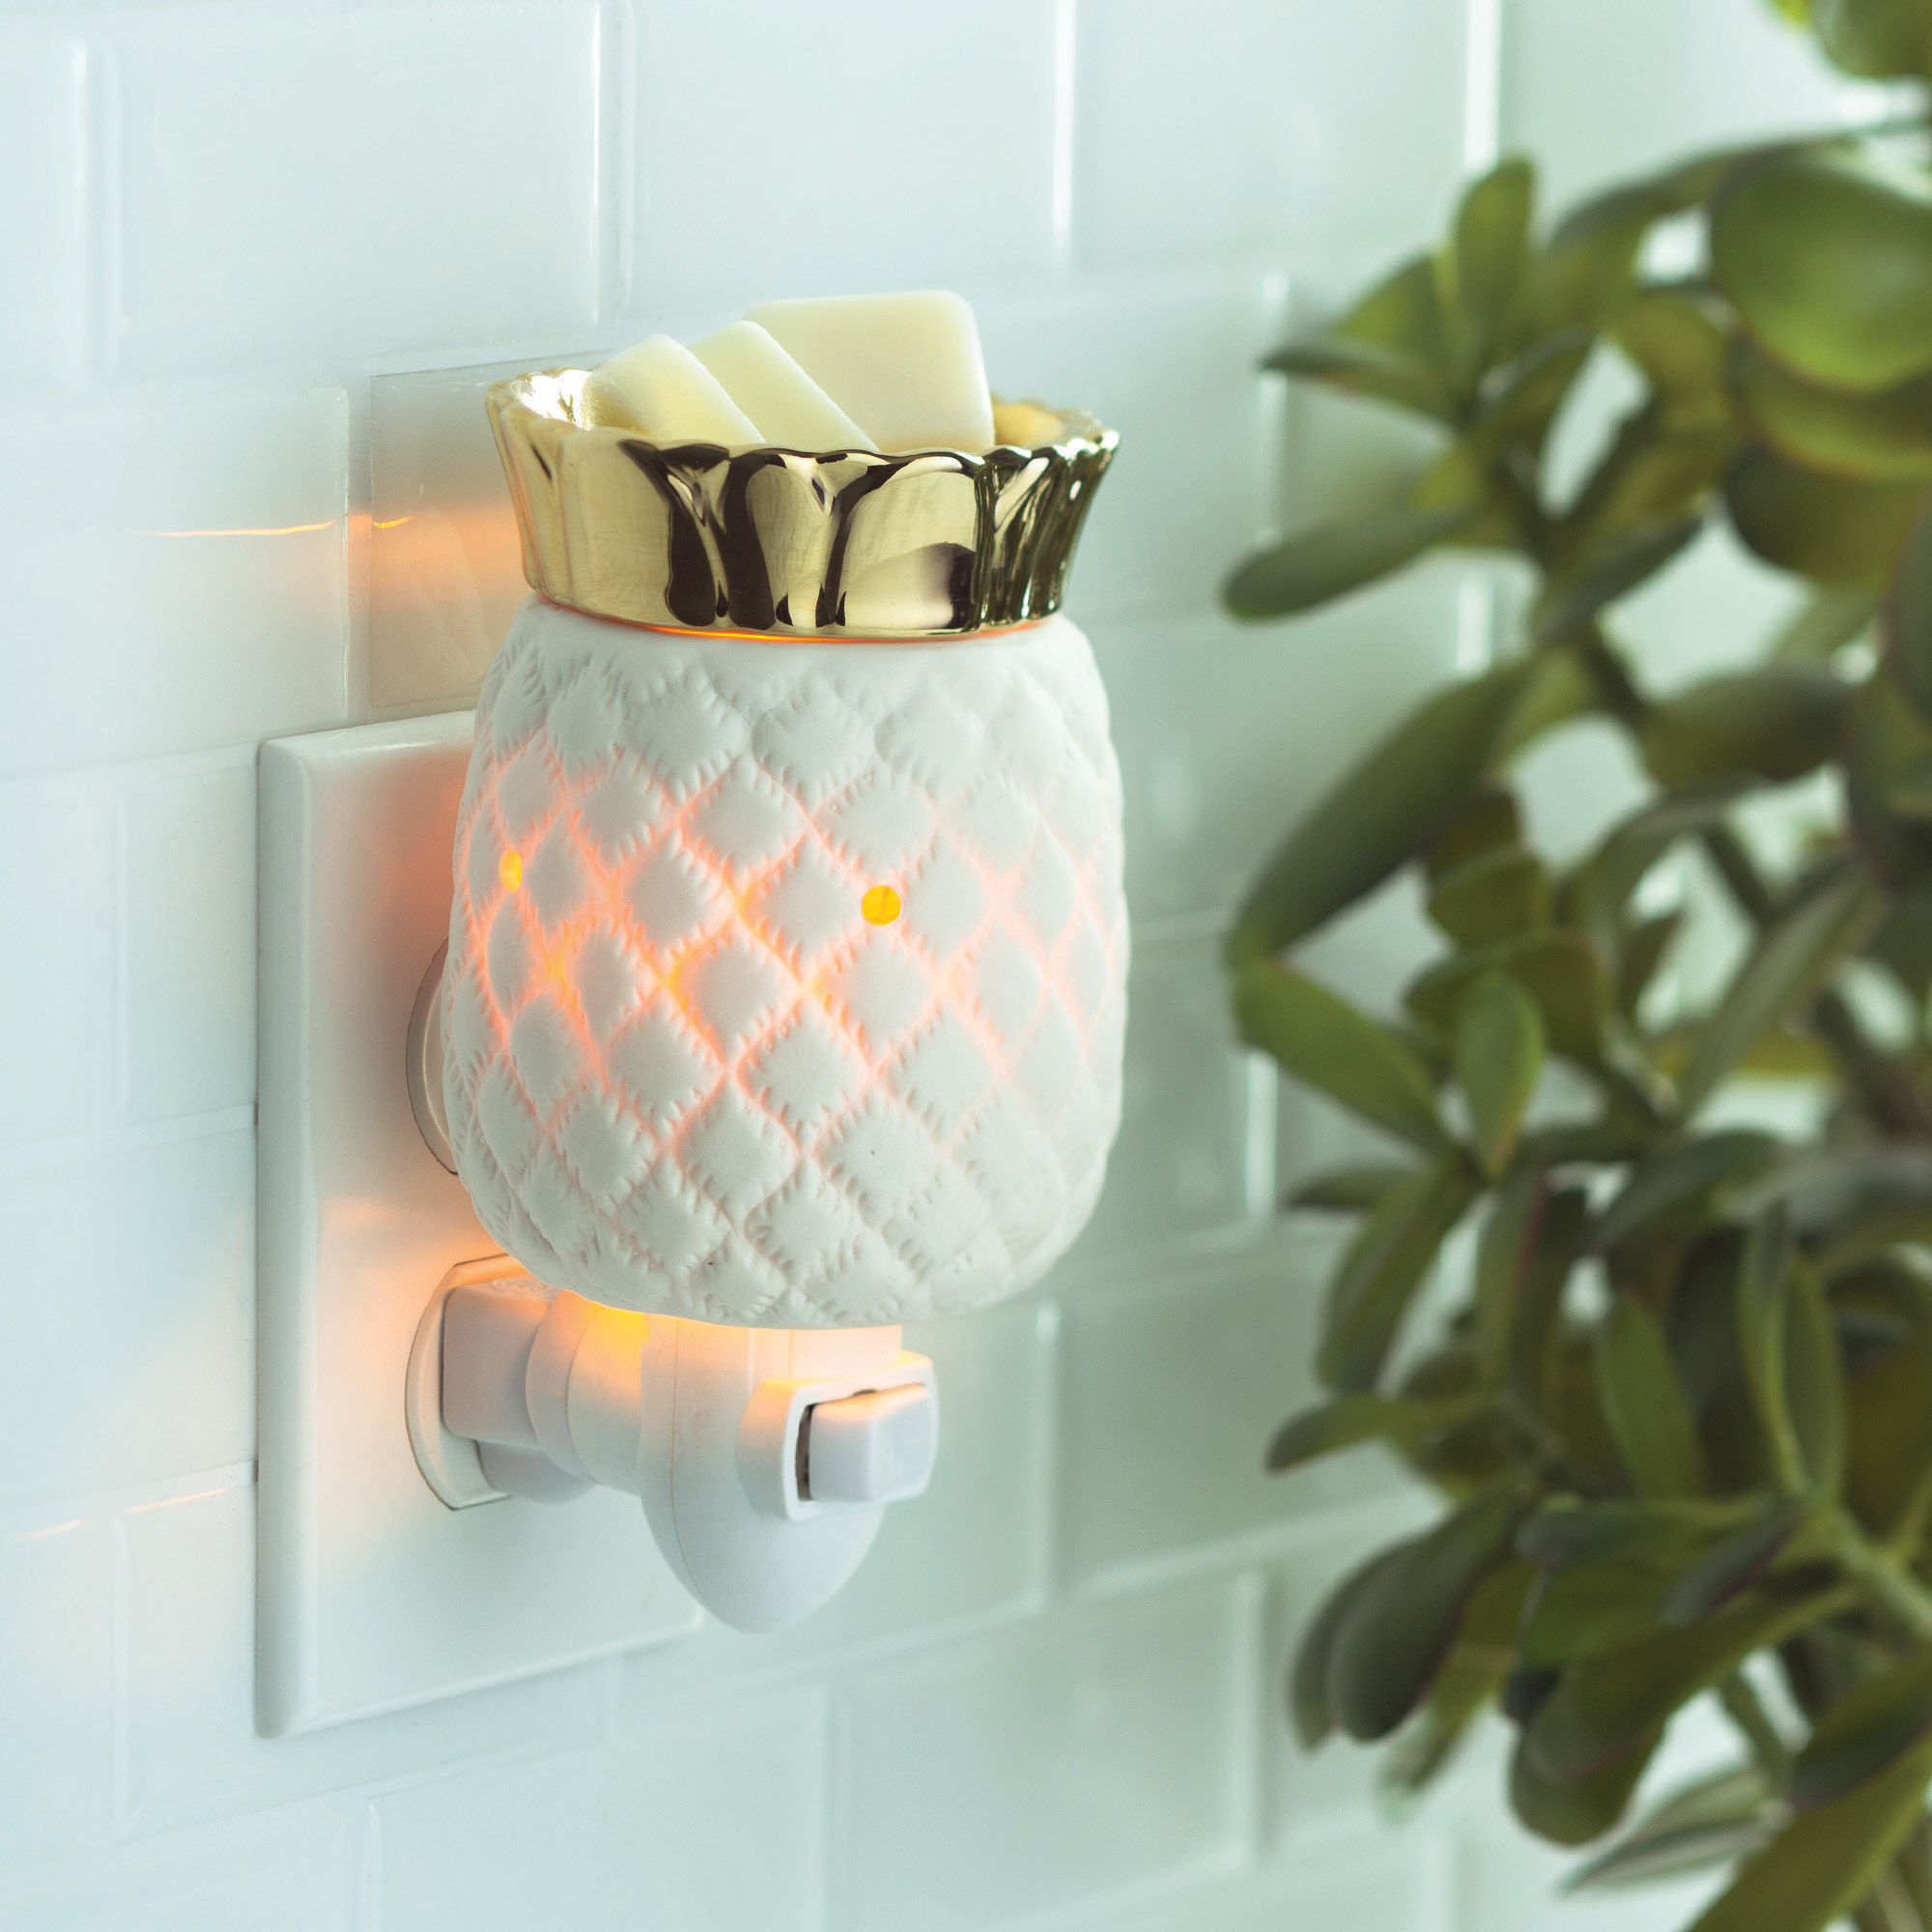 the pineapple warmer with wax plugged into the wall